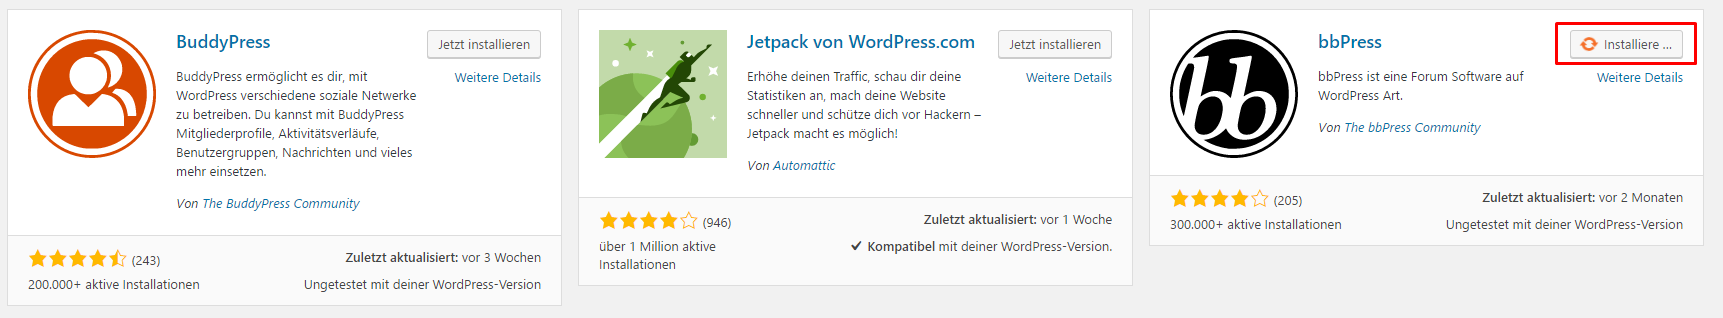 WordPress Plugin installieren - Installationsprozess